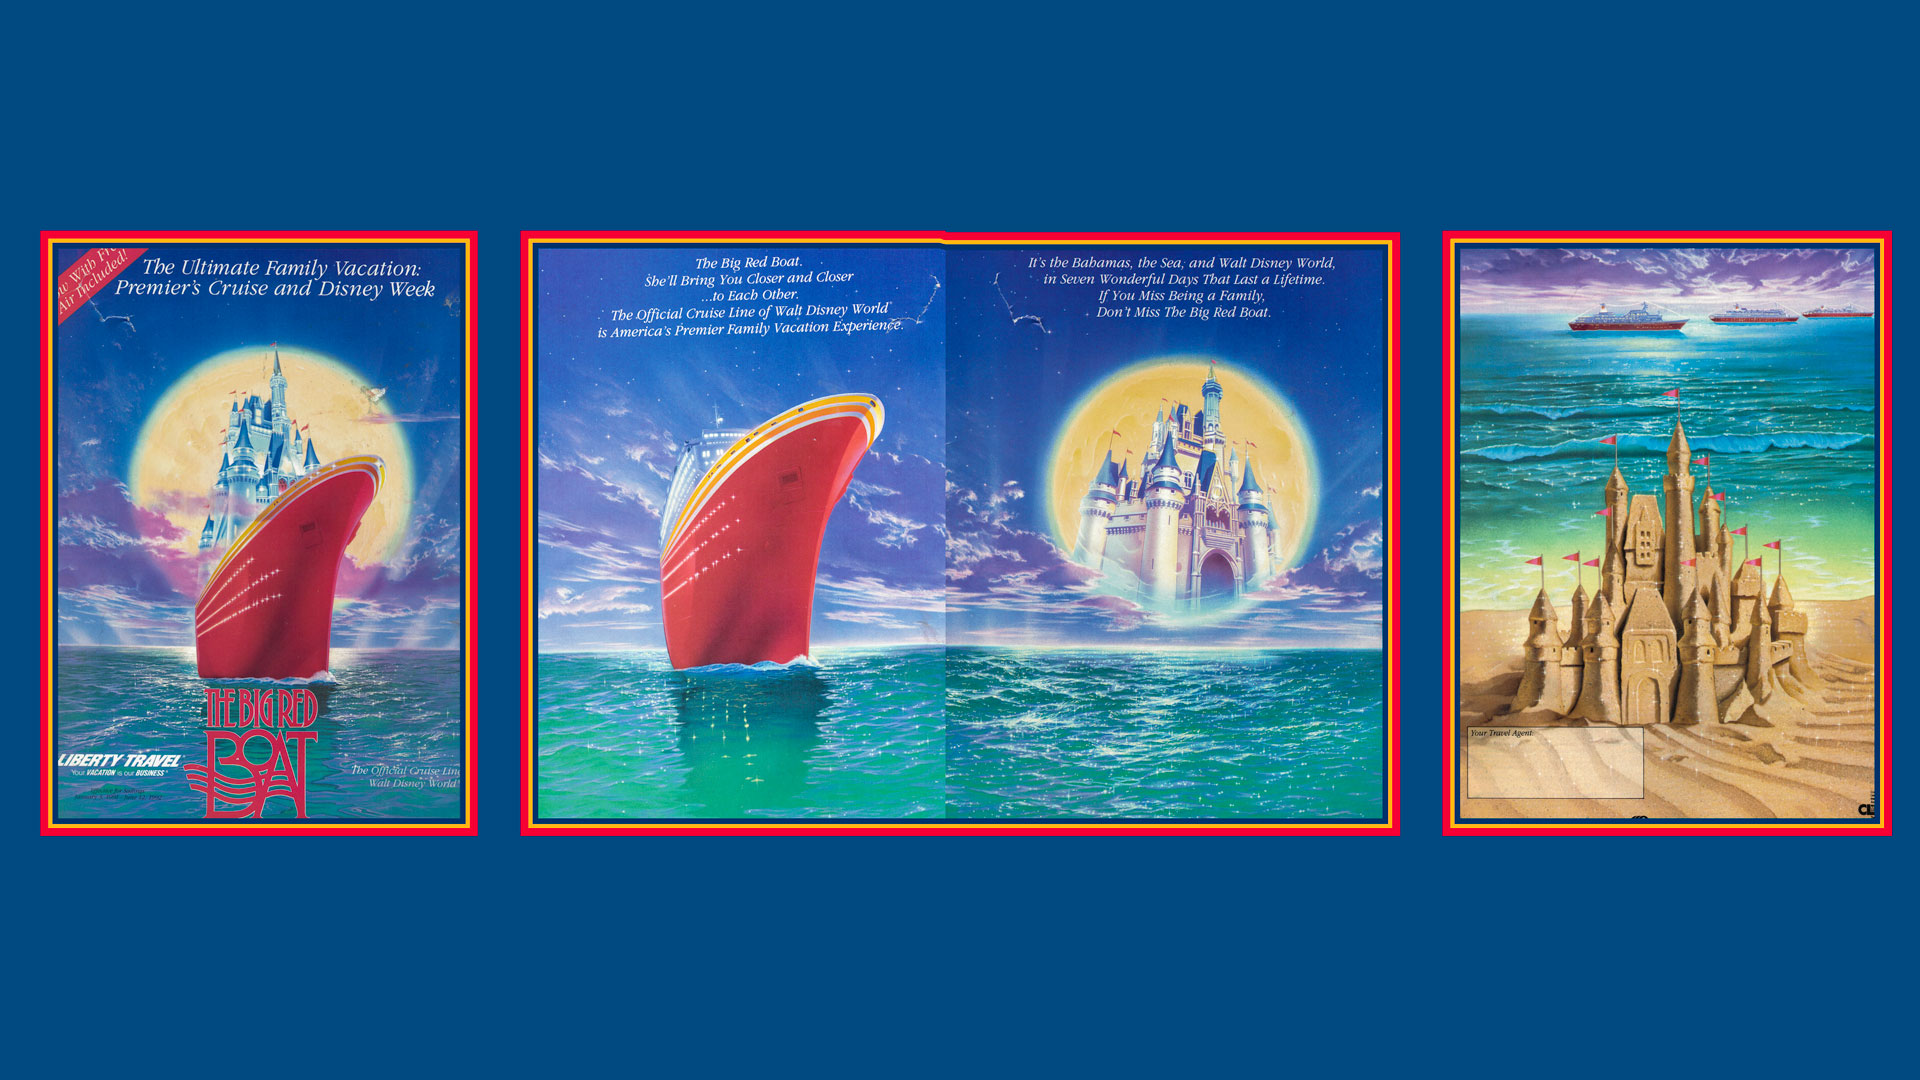 Premier Cruise Line Big Red Boat Booklet 1991 92